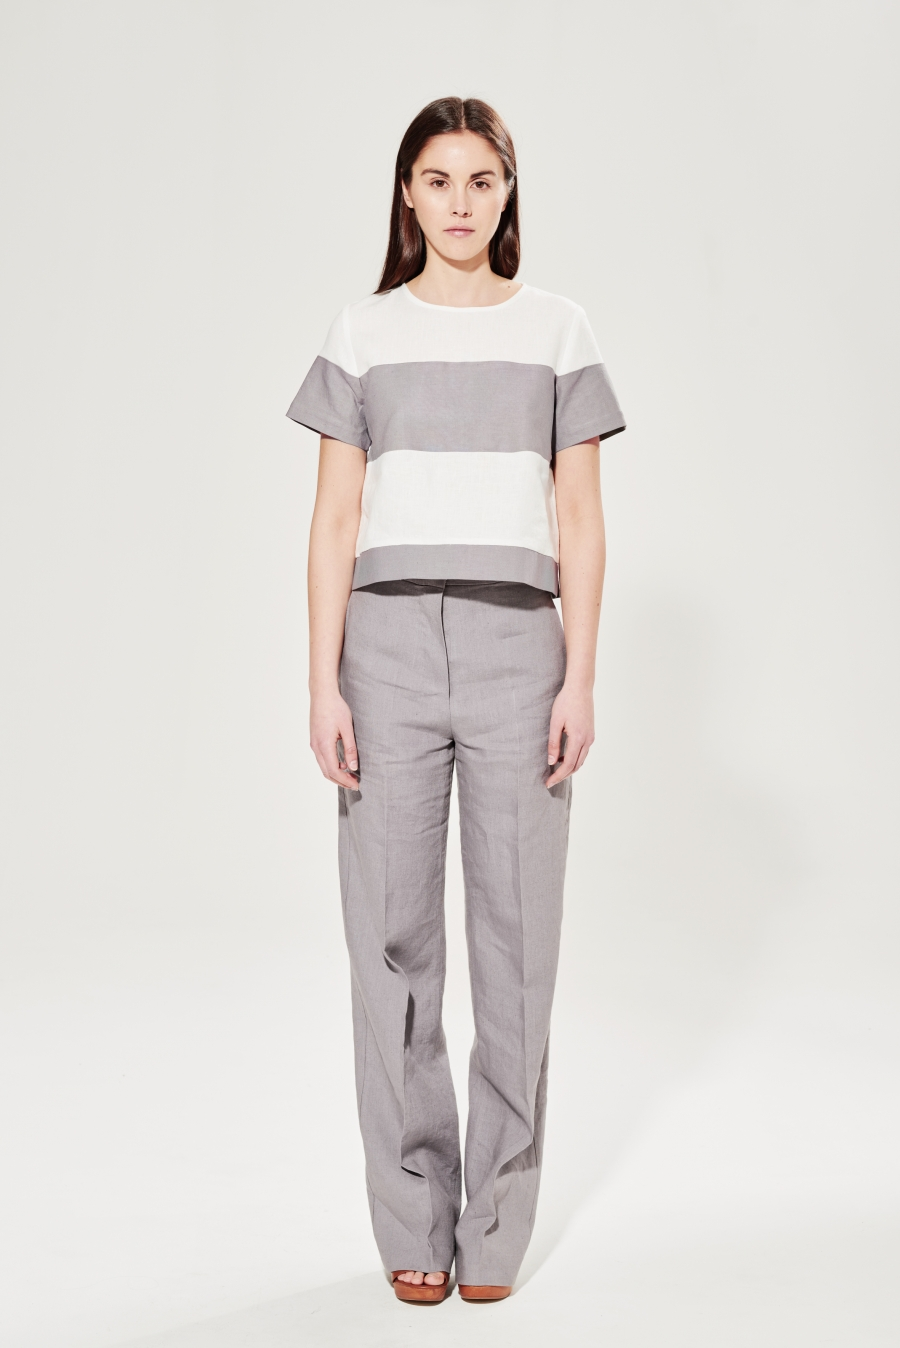 grey white top scaled